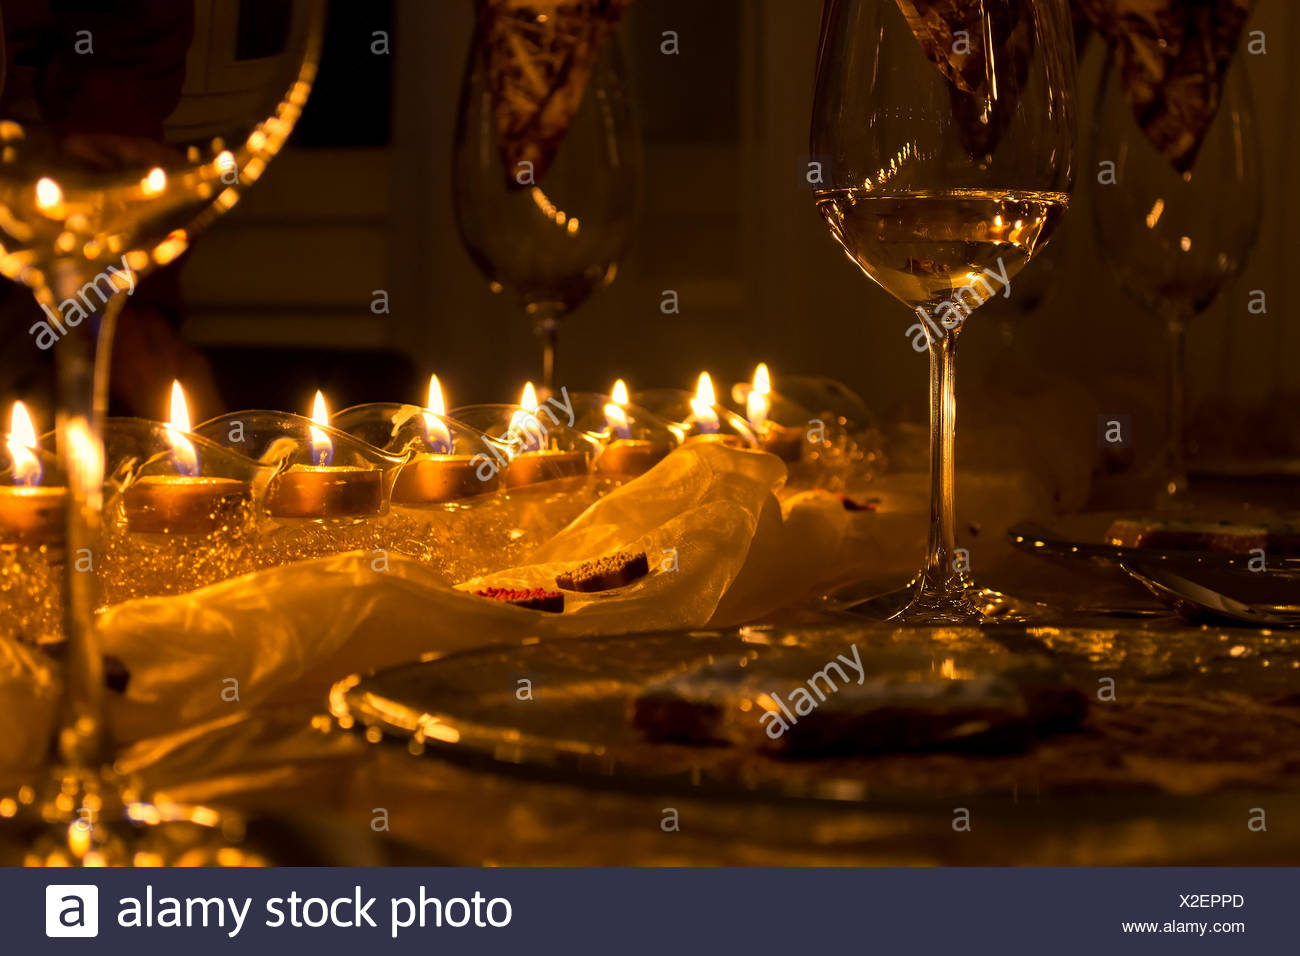 Solemn dining table - Stock Image